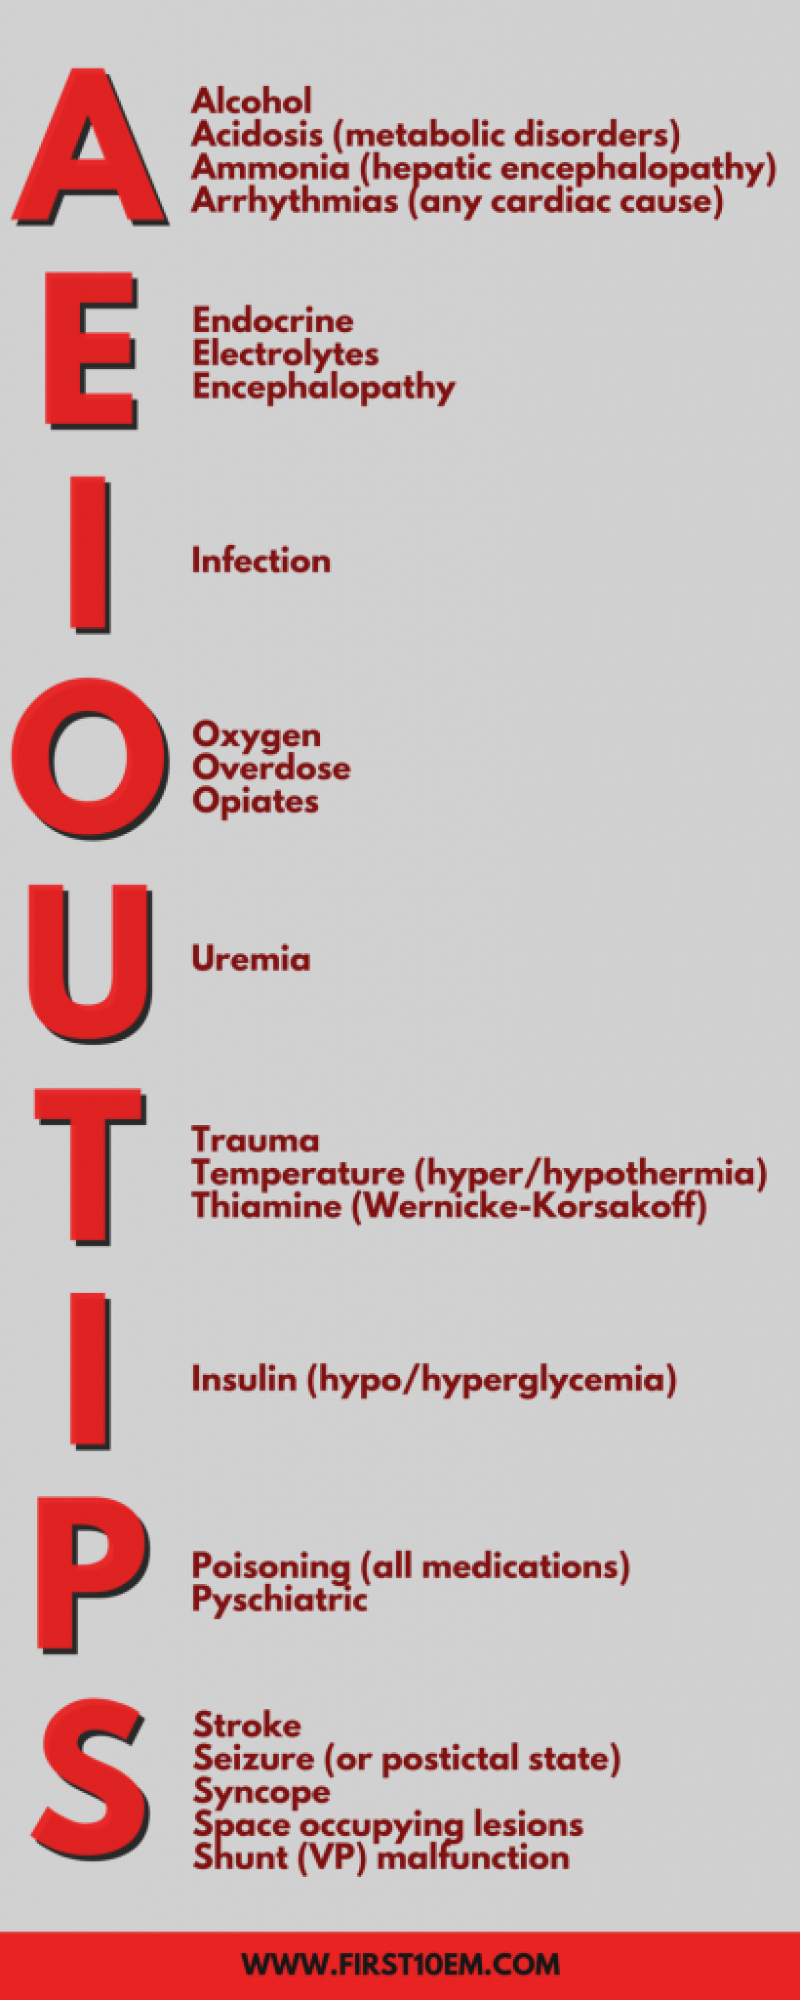 First10EM AEIOU TIPS mnemonic for altered mental status.png